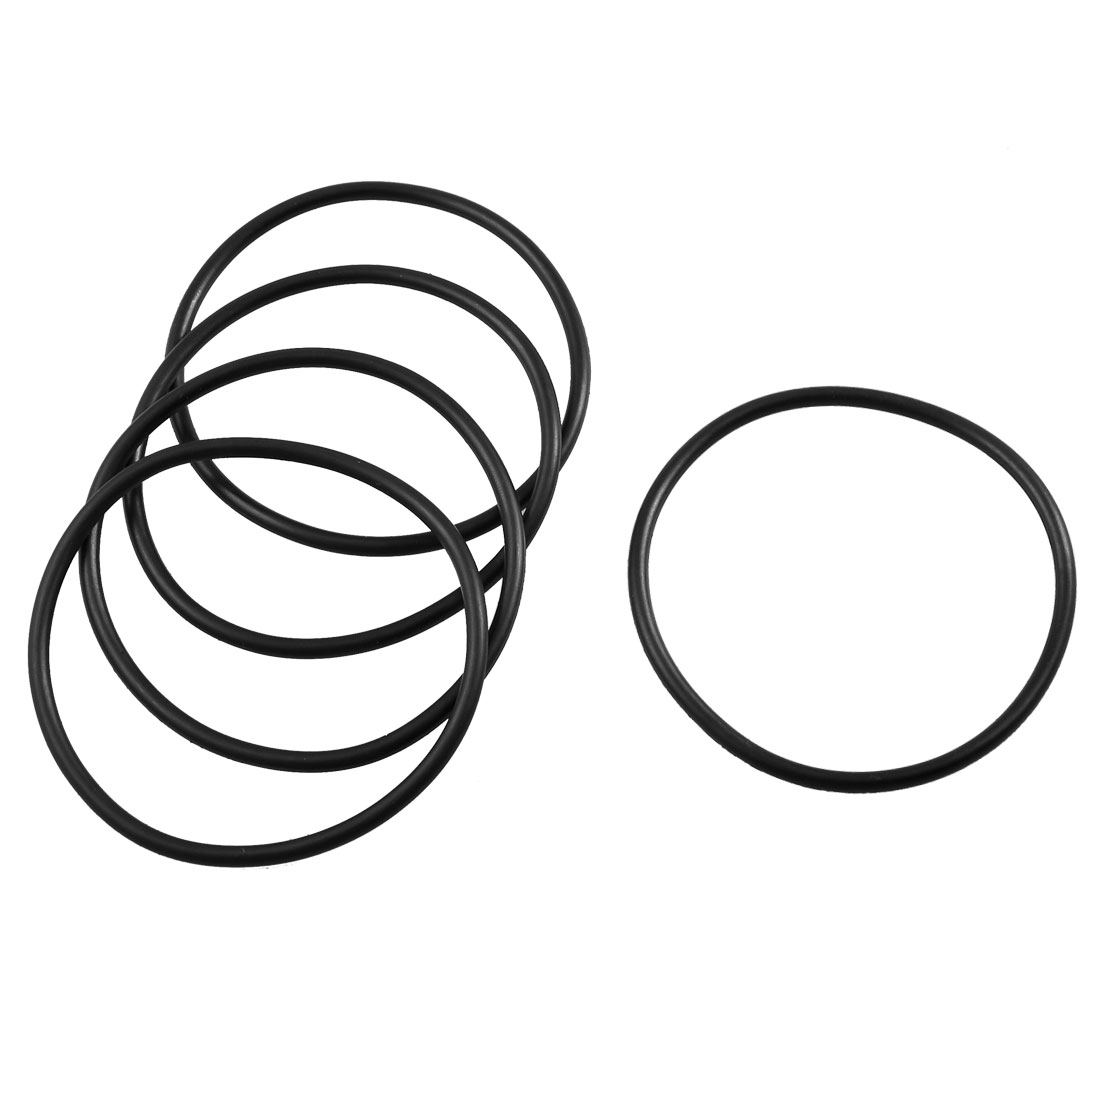 5 Pcs 76mm x 67mm x 3.5mm Mechanical Rubber O Ring Oil Seal Gaskets Black